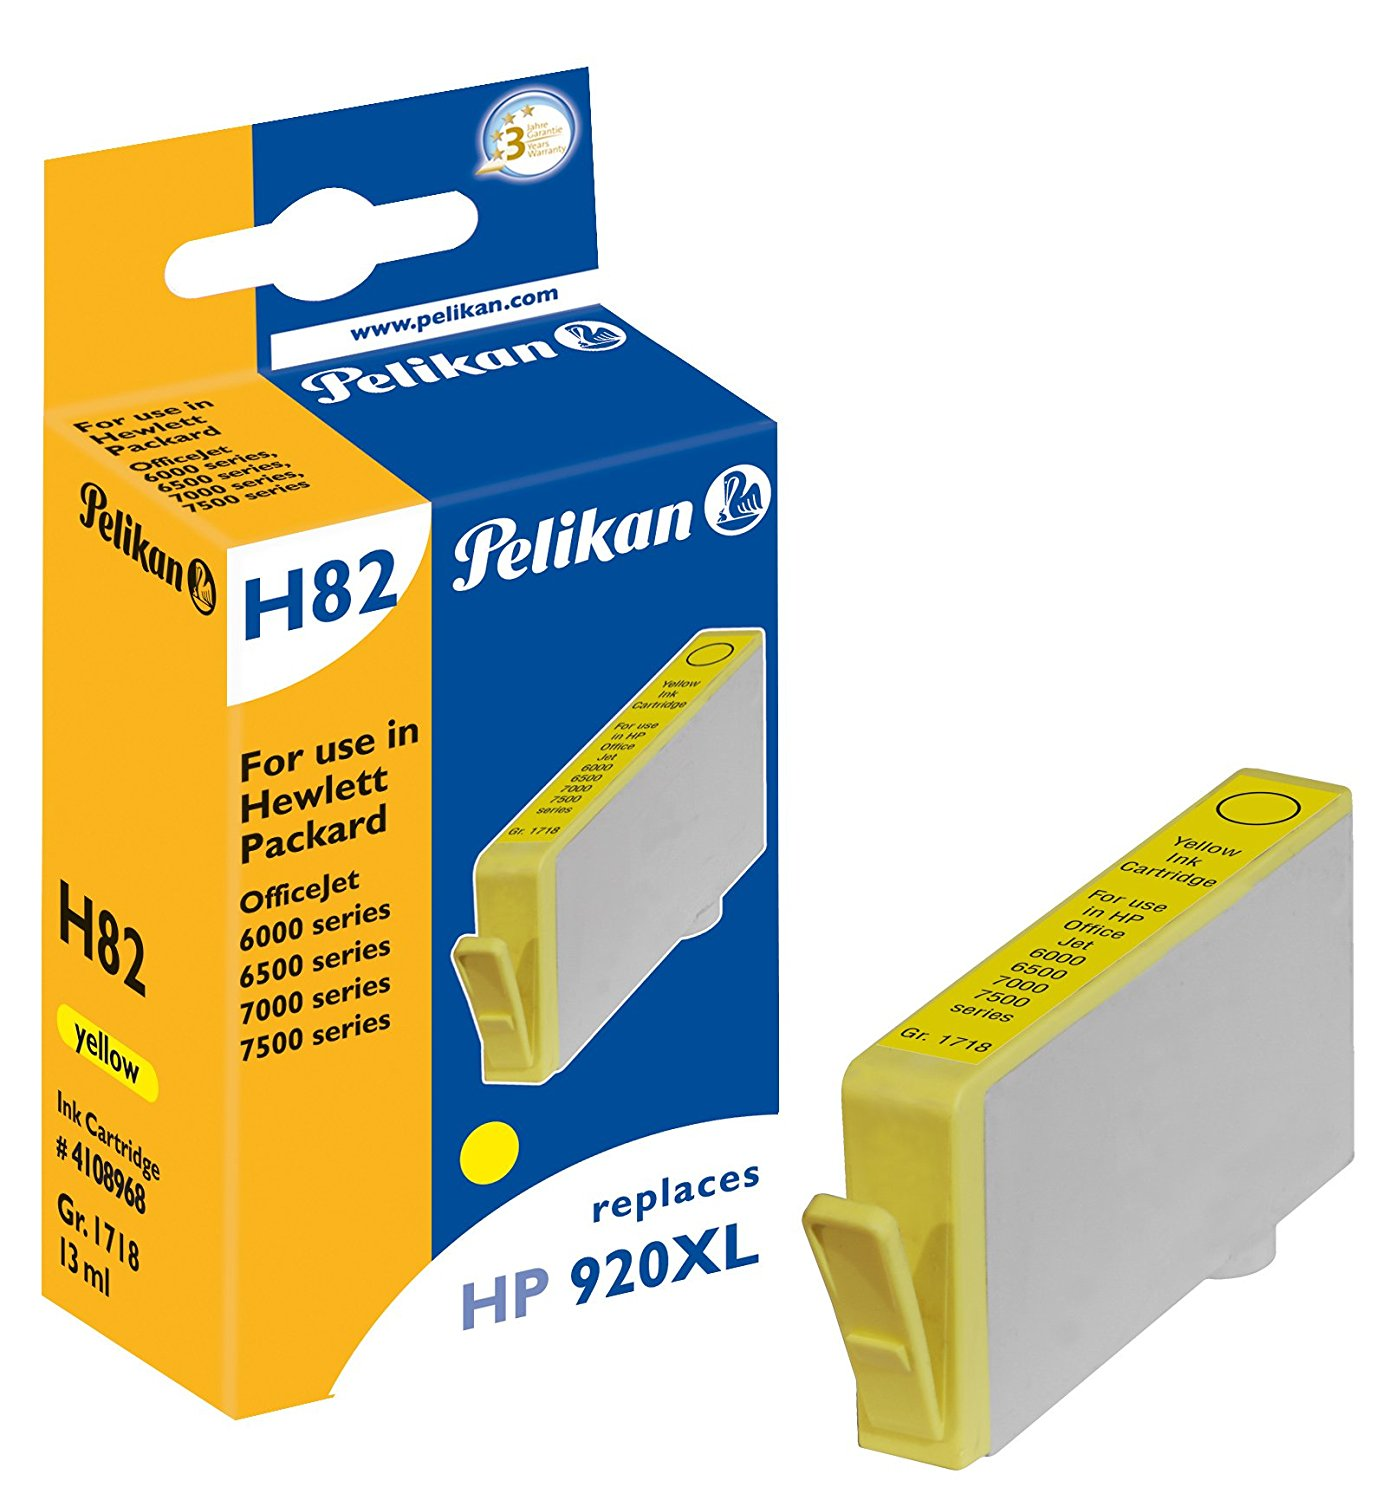 Pelikan Patrone H82 für HP 920XL Y OfficeJet 6000 etc. yellow